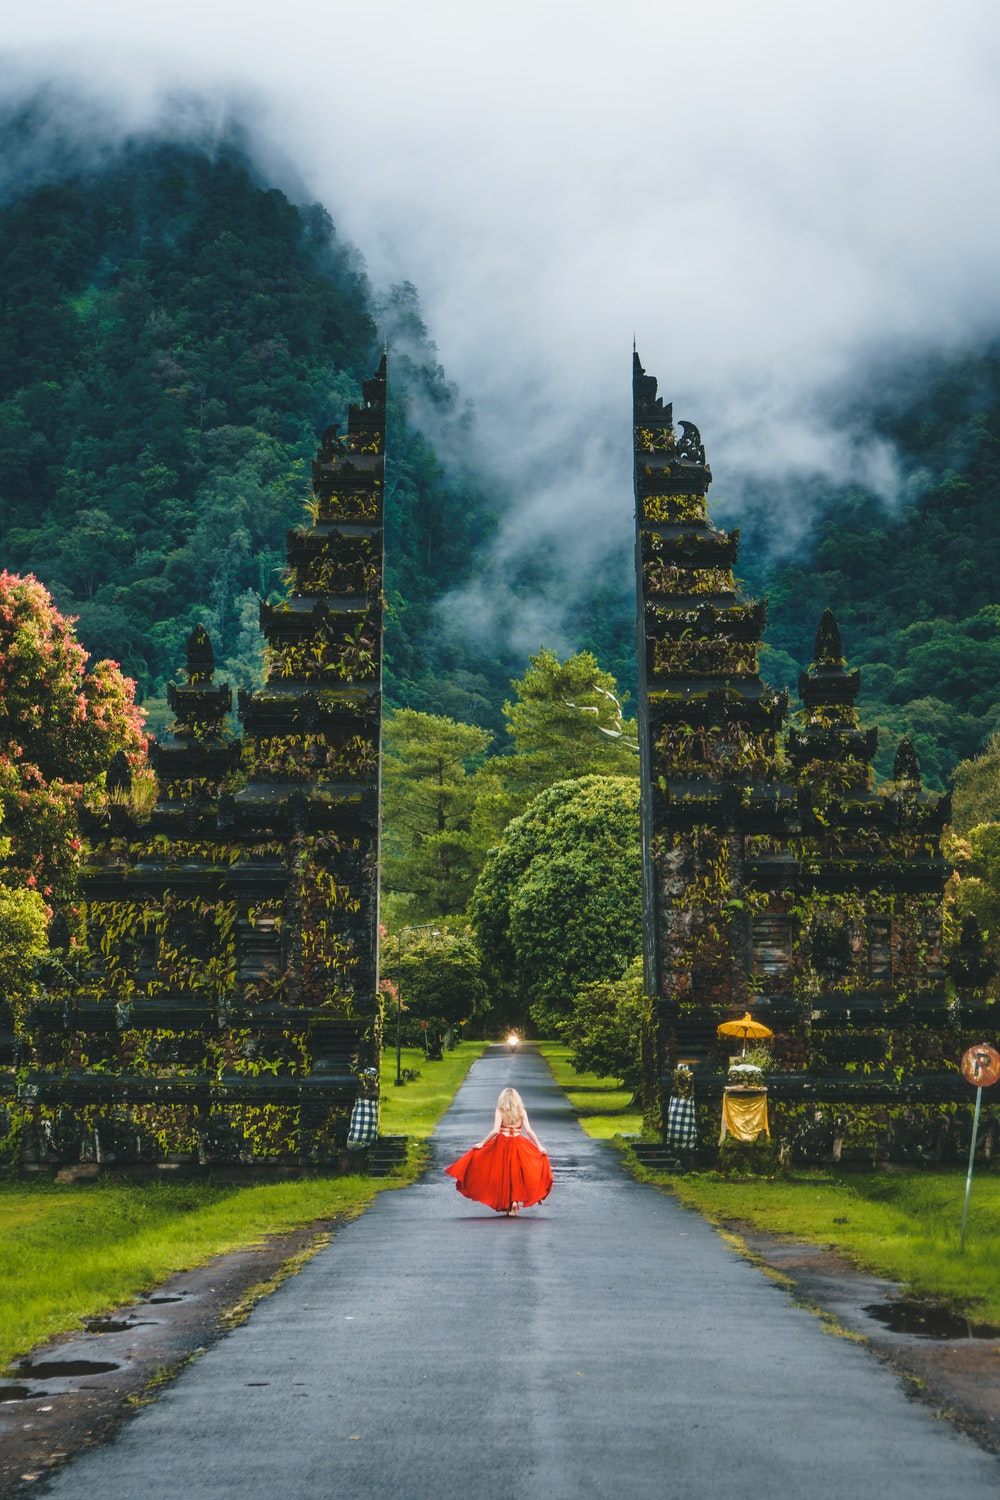 Top Ways of Dealing With Anxiety Whilst Travelling Abroad in 2019 - Stress free. Gates in Bali Indonesia